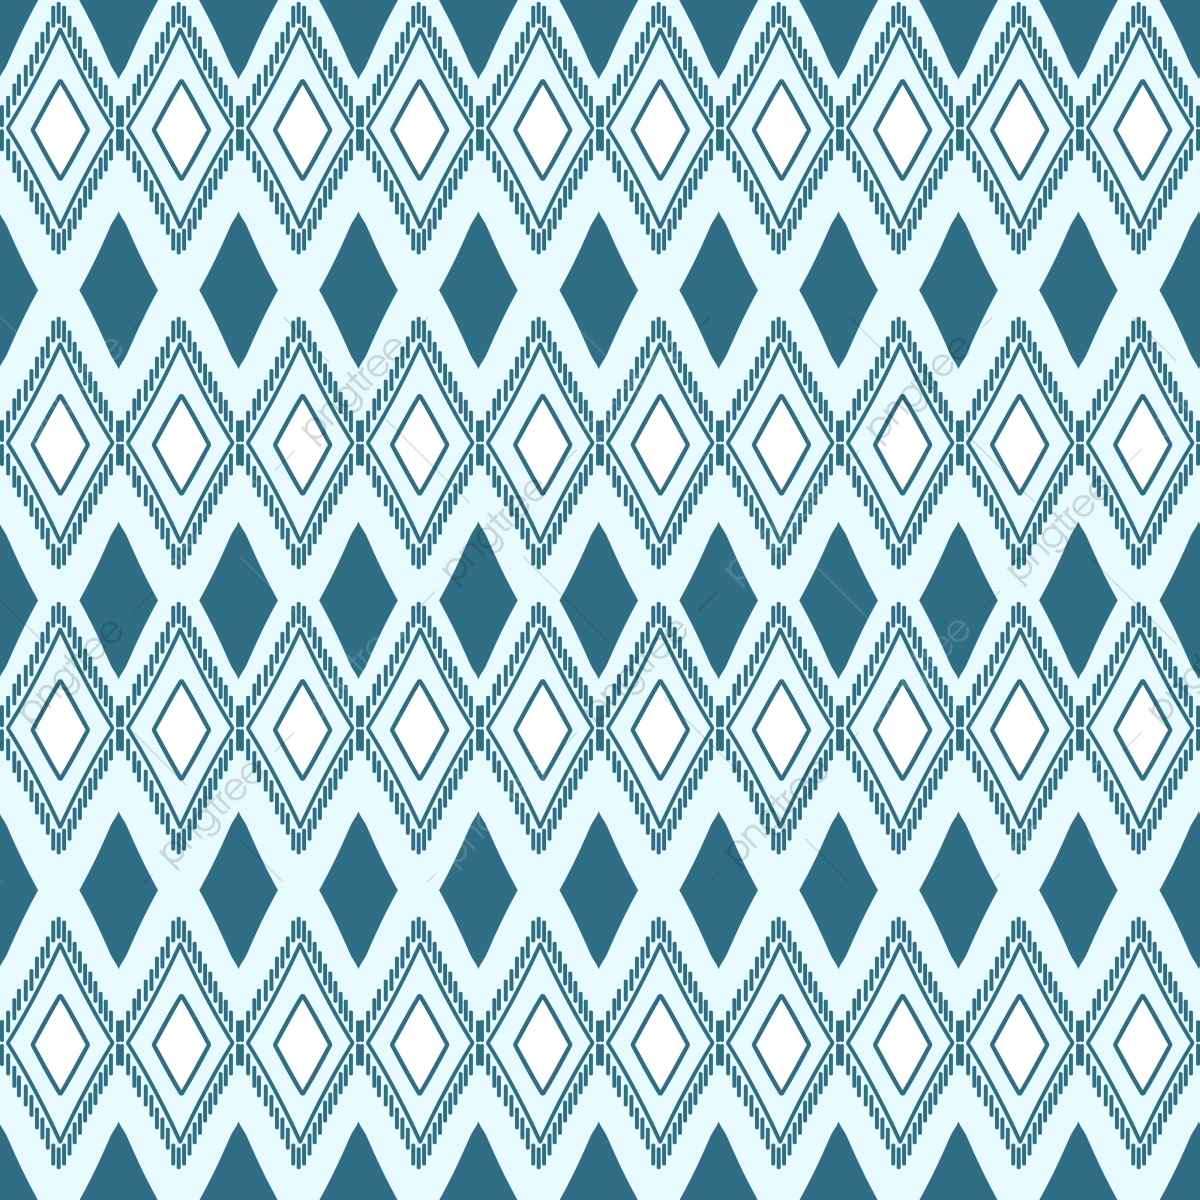 Aztec Tribal Seamless Pattern Vector Illustration Ready For Fashion